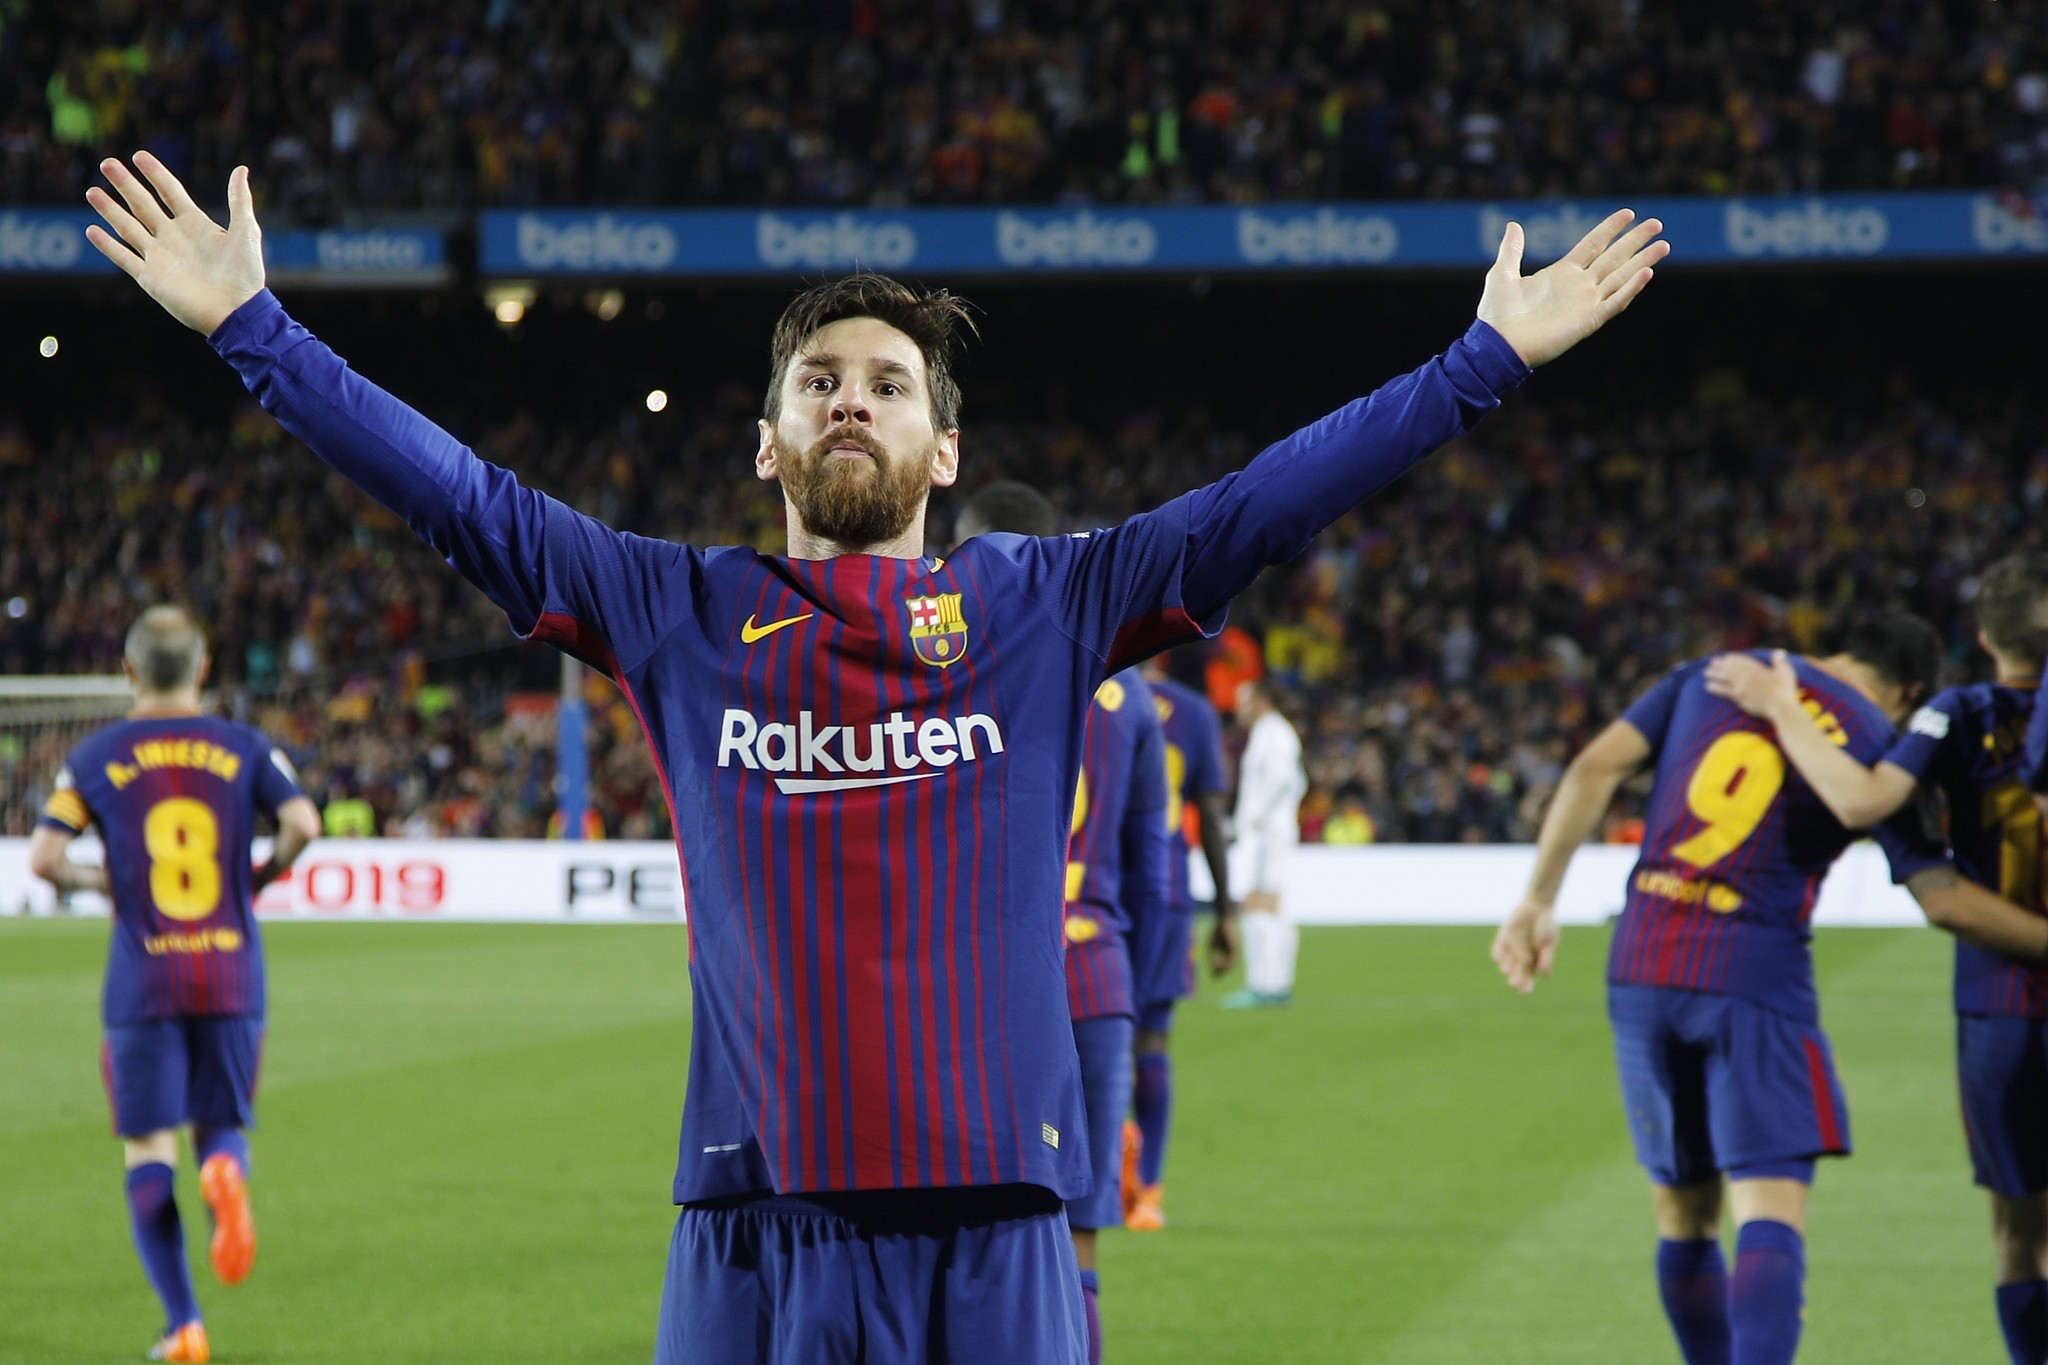 Leo Messi Messi And Barcelona Reportedly To Play In Israel The Times Of Israel